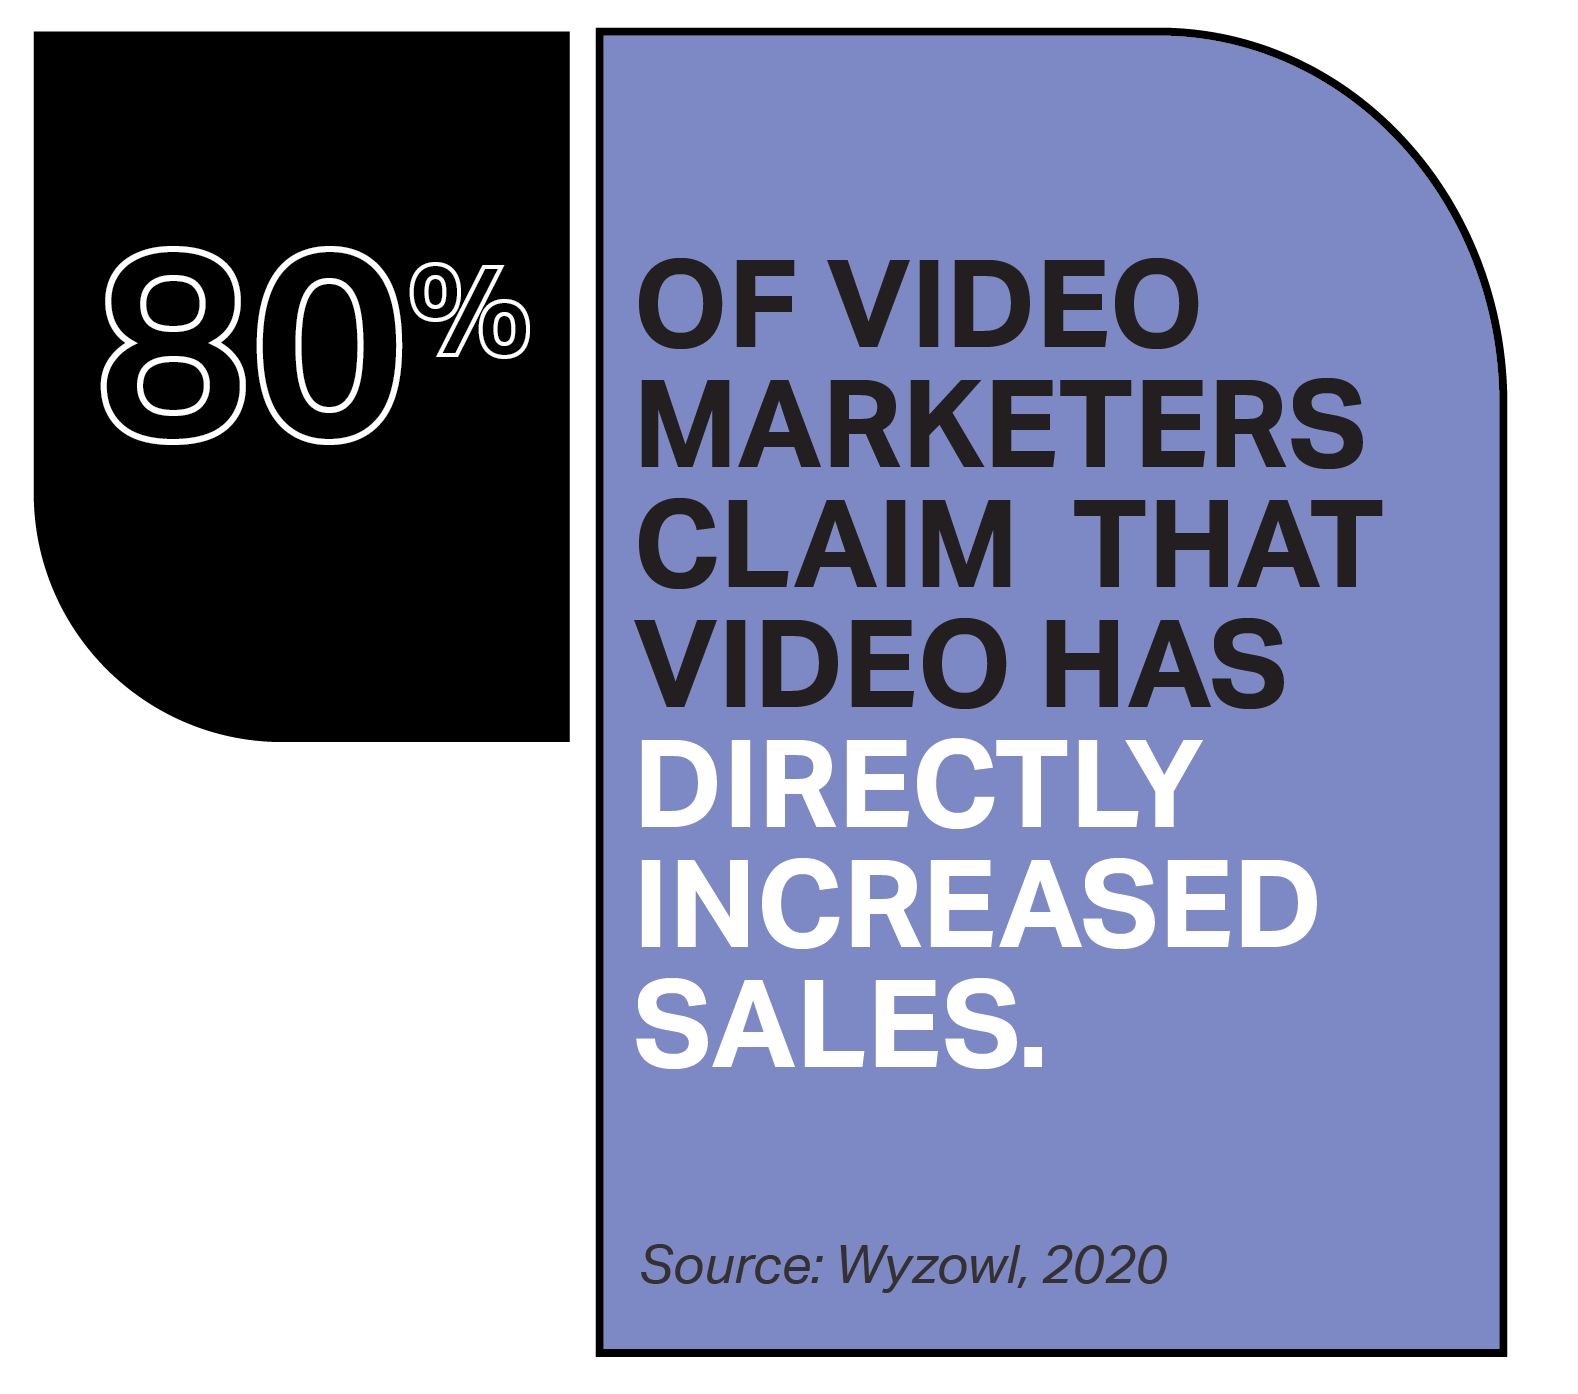 As a content marketing agency, we stay ahead of the curve with the latest research